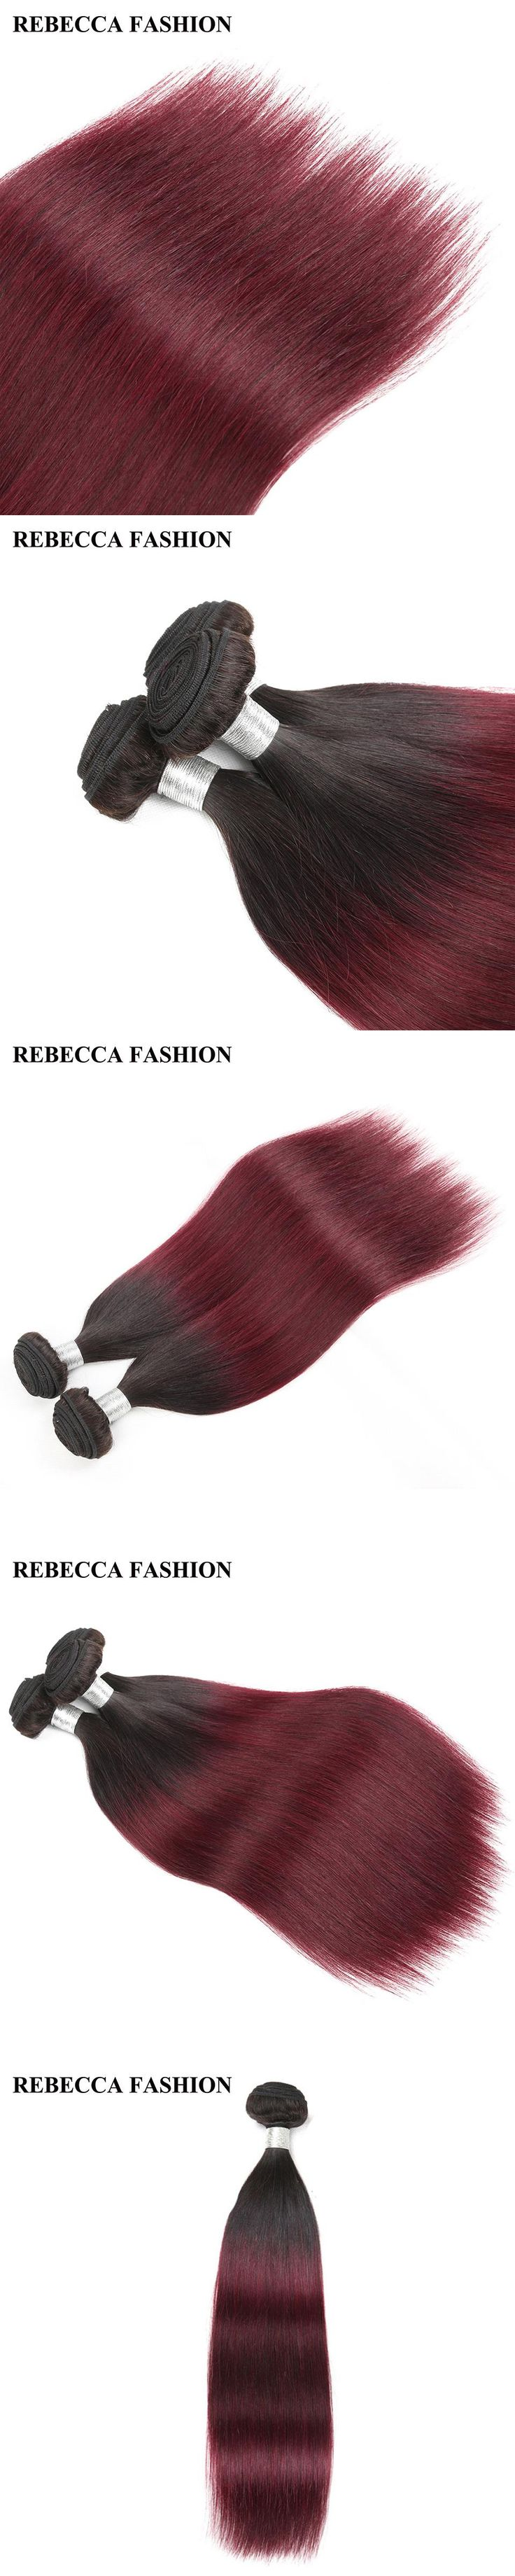 Rebecca Remy Ombre Straight Human Hair Bundles 1PC Brazilian Hair Weave Bundles Salon  Ombre Wine Red Hair Extensions T1b99j